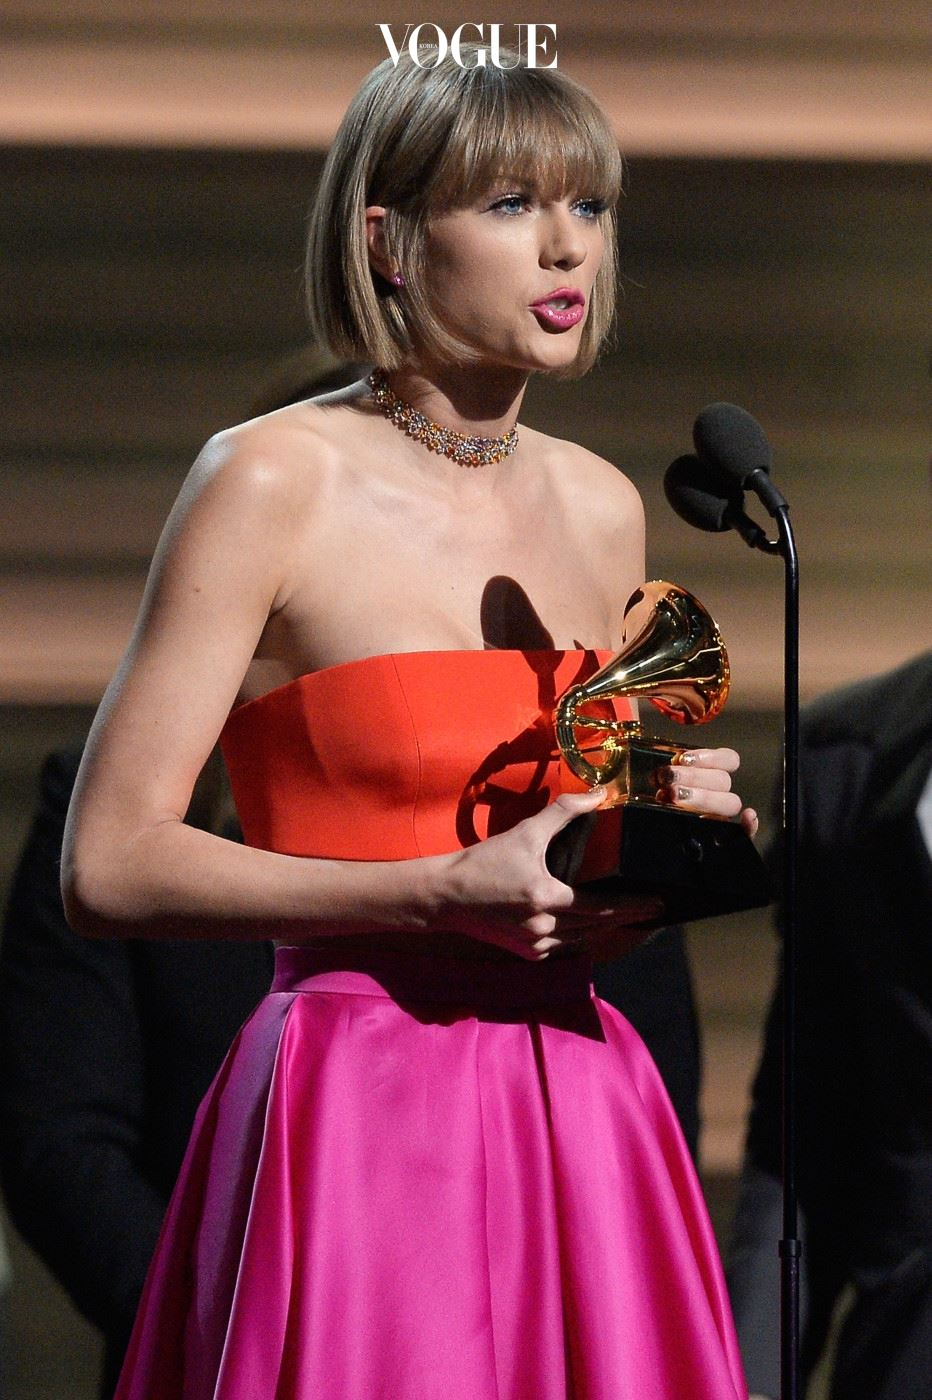 """LOS ANGELES, CA - FEBRUARY 15:  Singer Taylor Swift accepts the Album of the Year award for """"1989"""" onstage during The 58th GRAMMY Awards at Staples Center on February 15, 2016 in Los Angeles, California.  (Photo by Kevork Djansezian/Getty Images for NARAS)"""